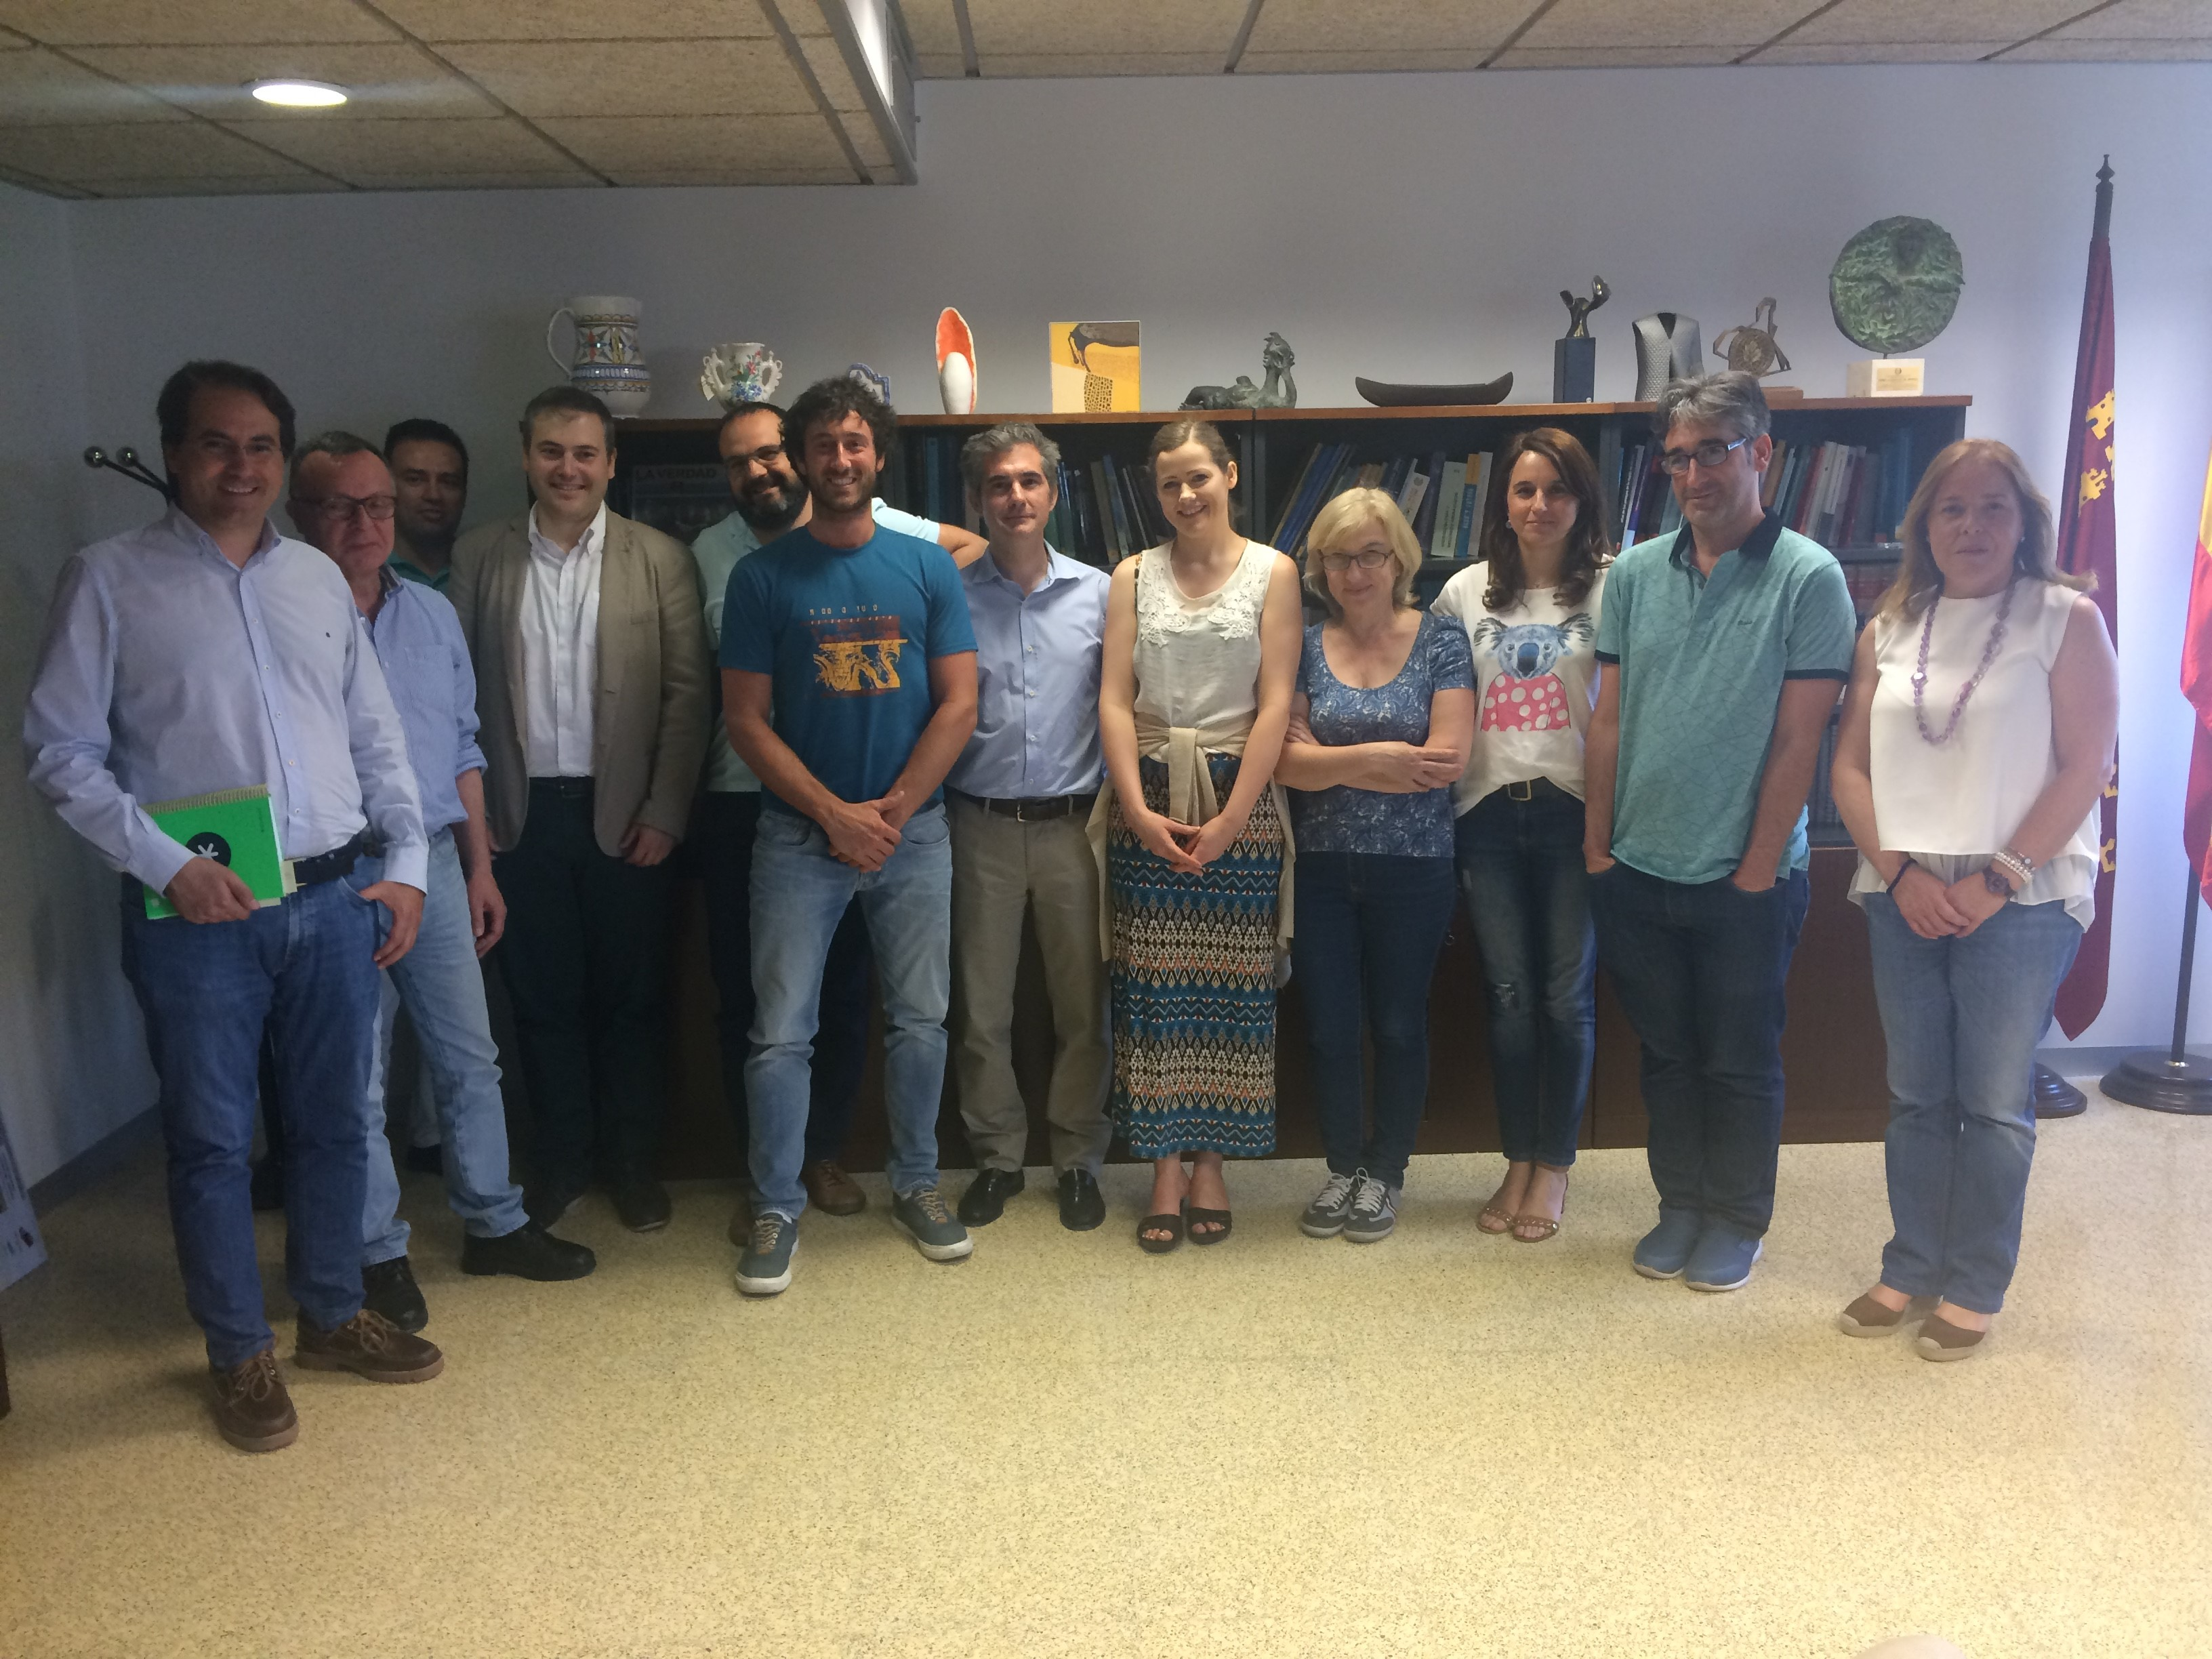 University of Macerata and Ulster University researchers seconded in Murcia, Spain (May 2018)